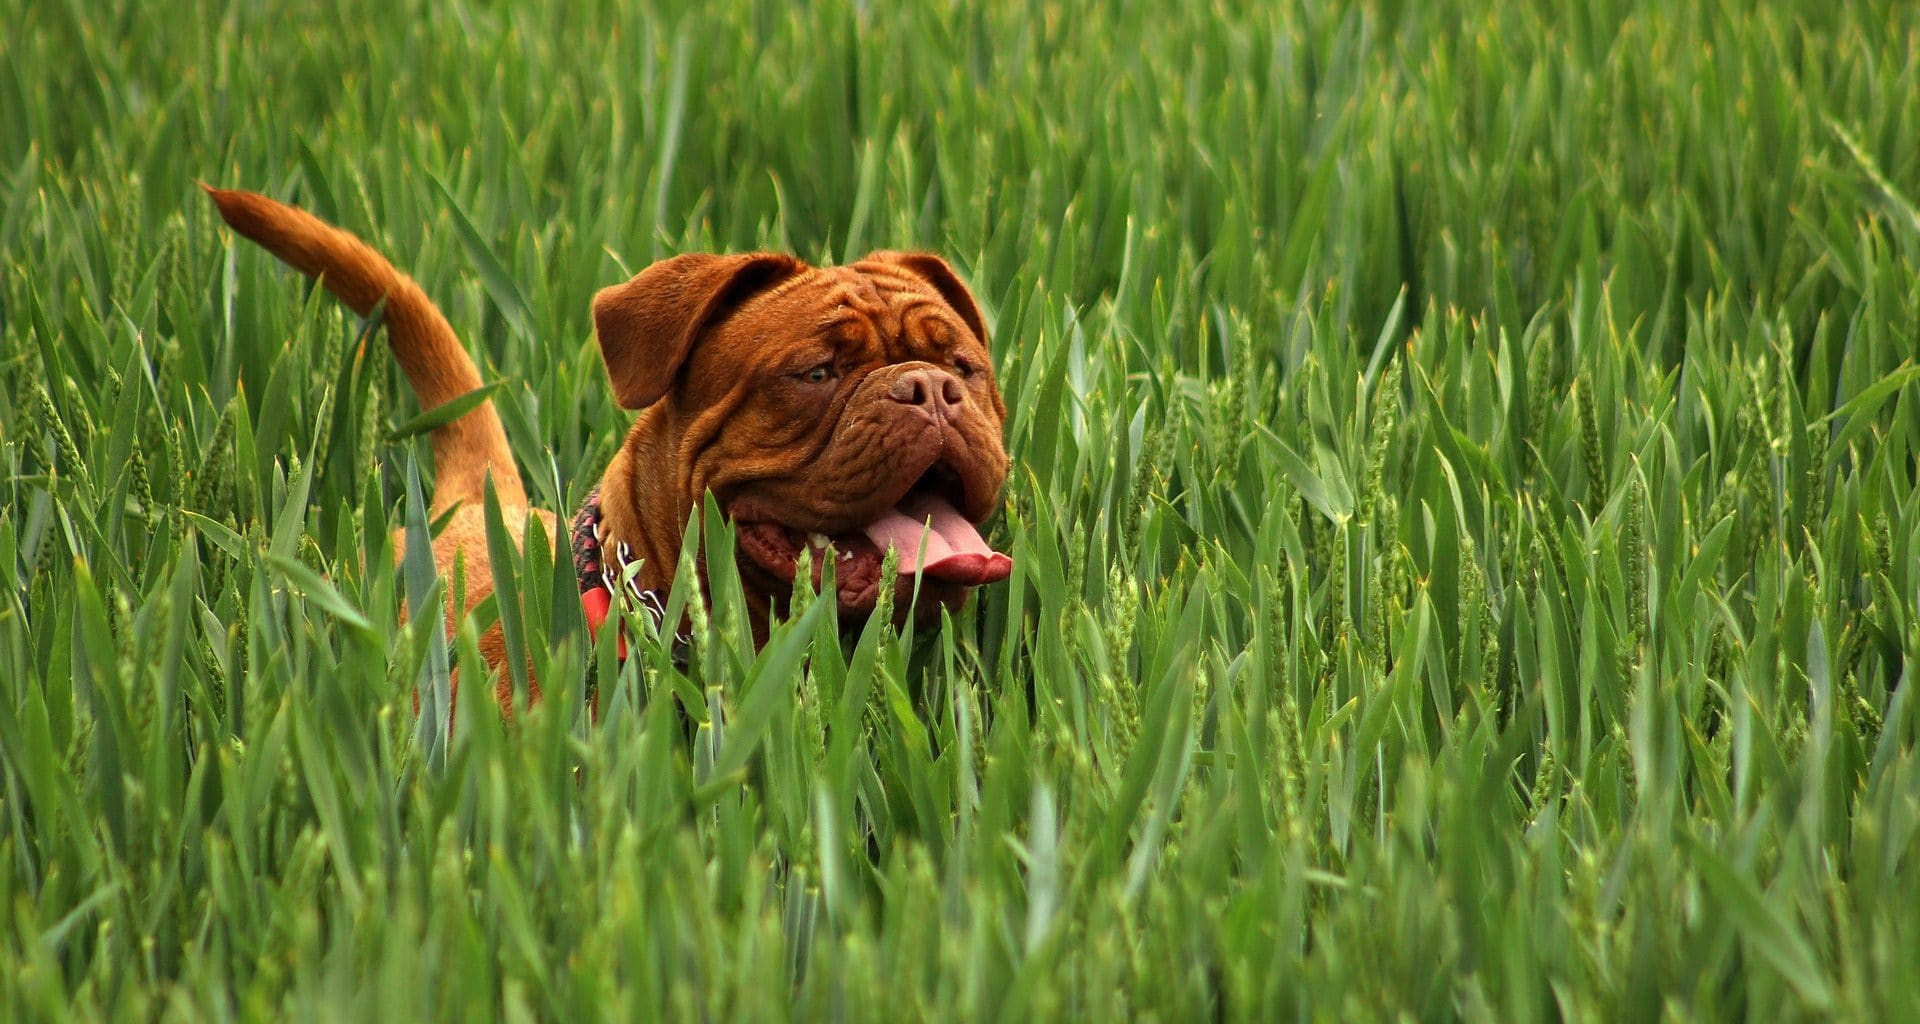 Ticks on Dogs - Featured Image